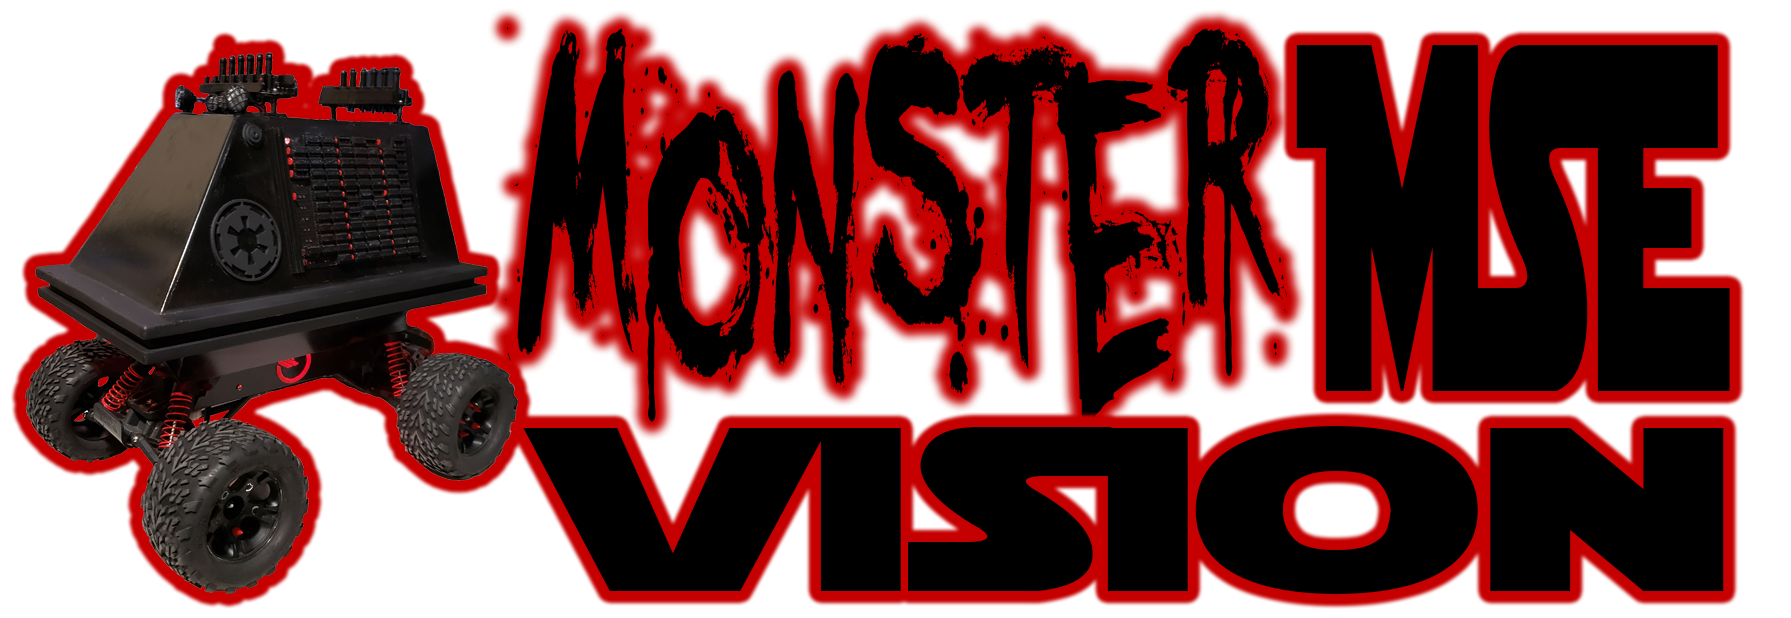 monstermse vision.png